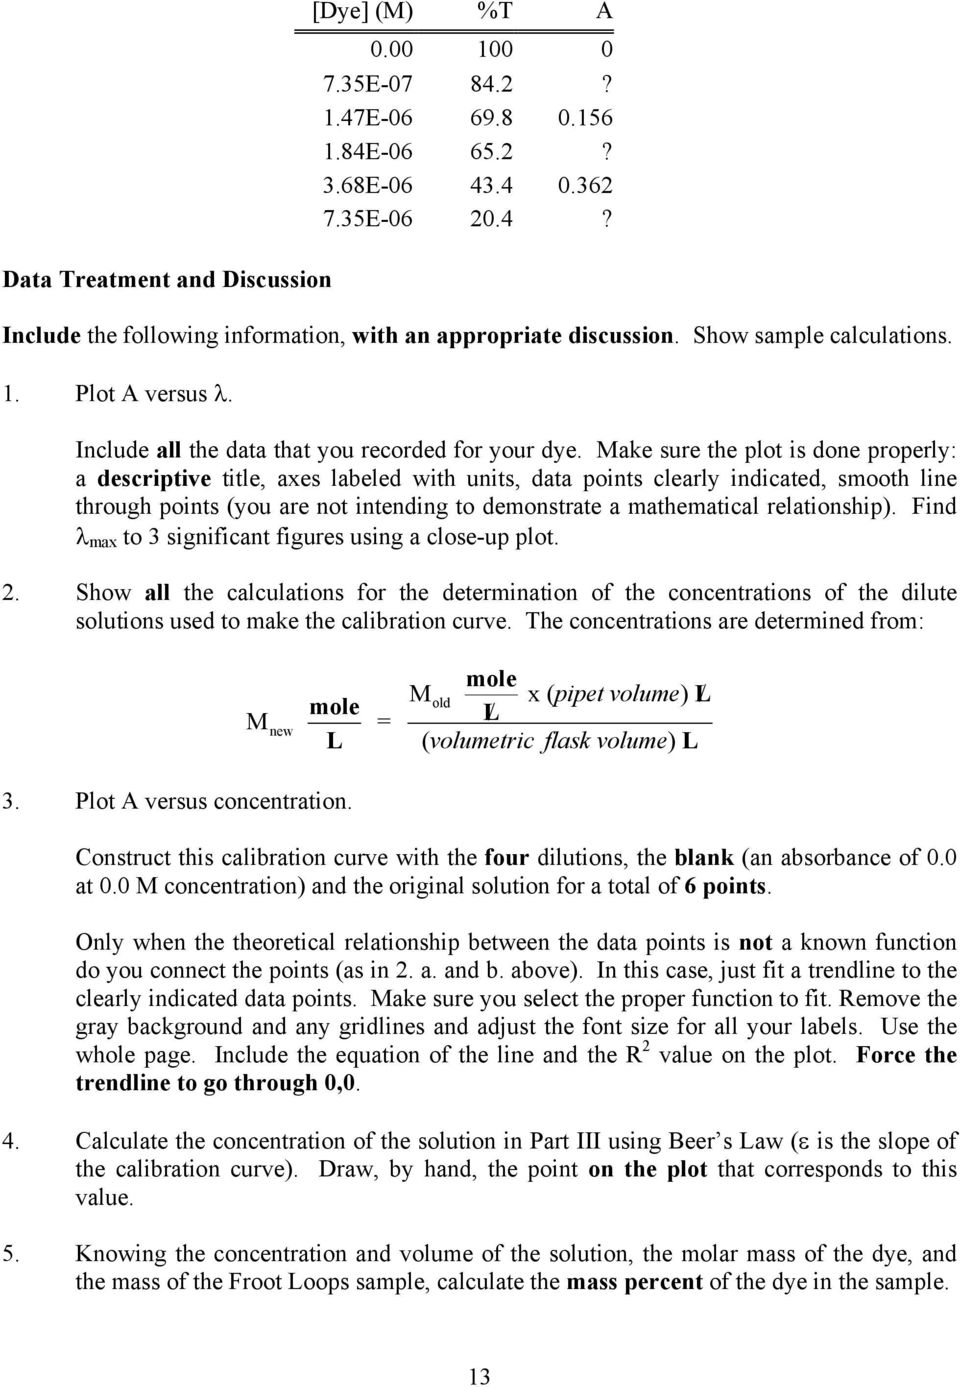 A Beer s Law Experiment - PDF